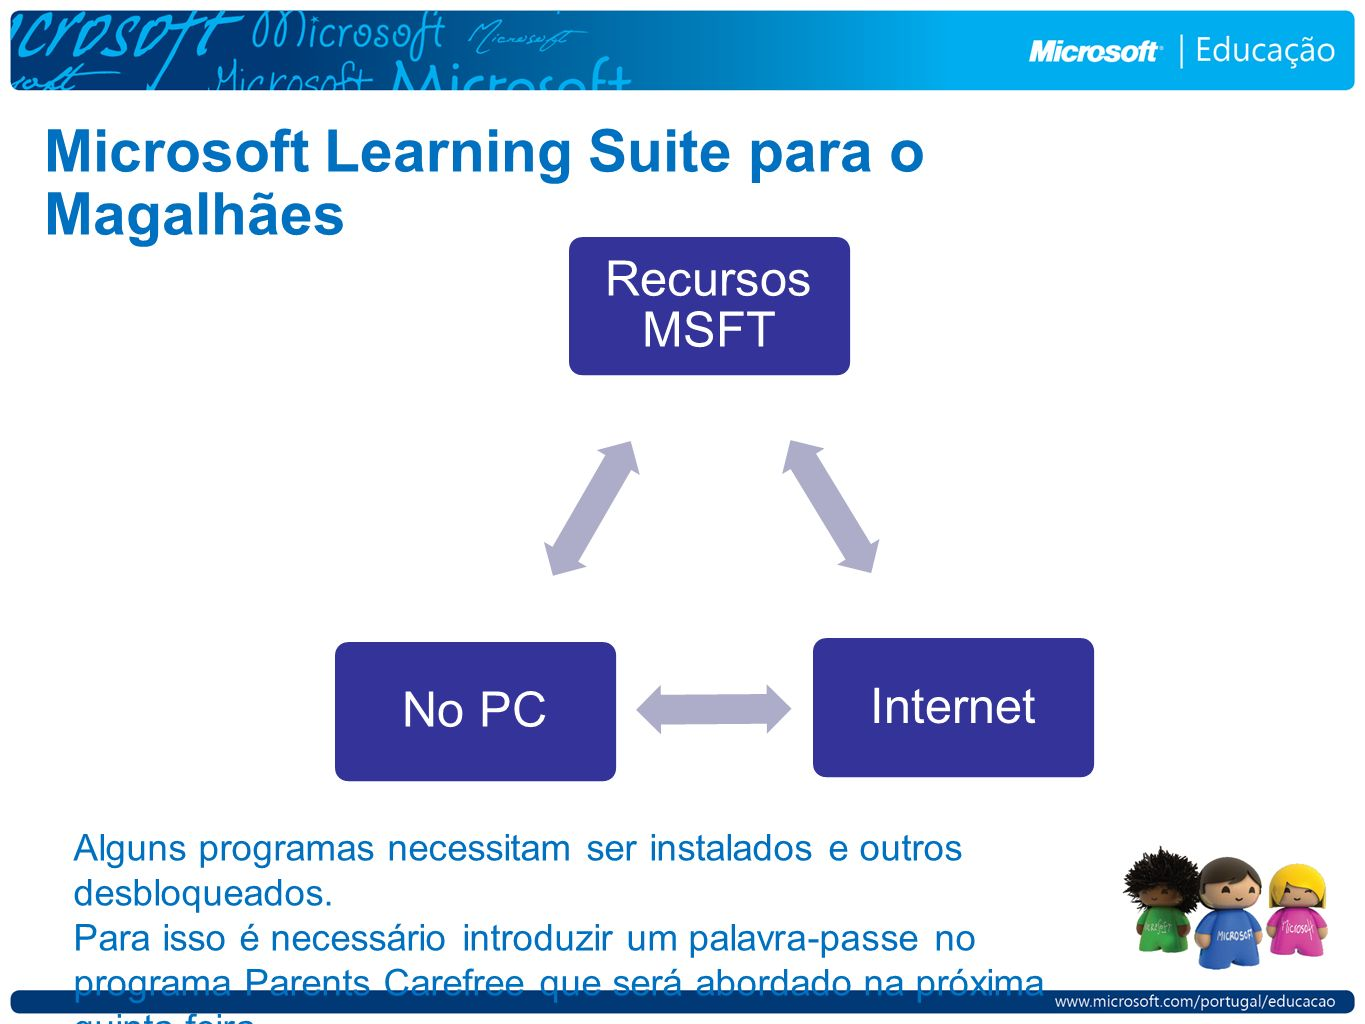 Microsoft Learning Suite para o Magalhães